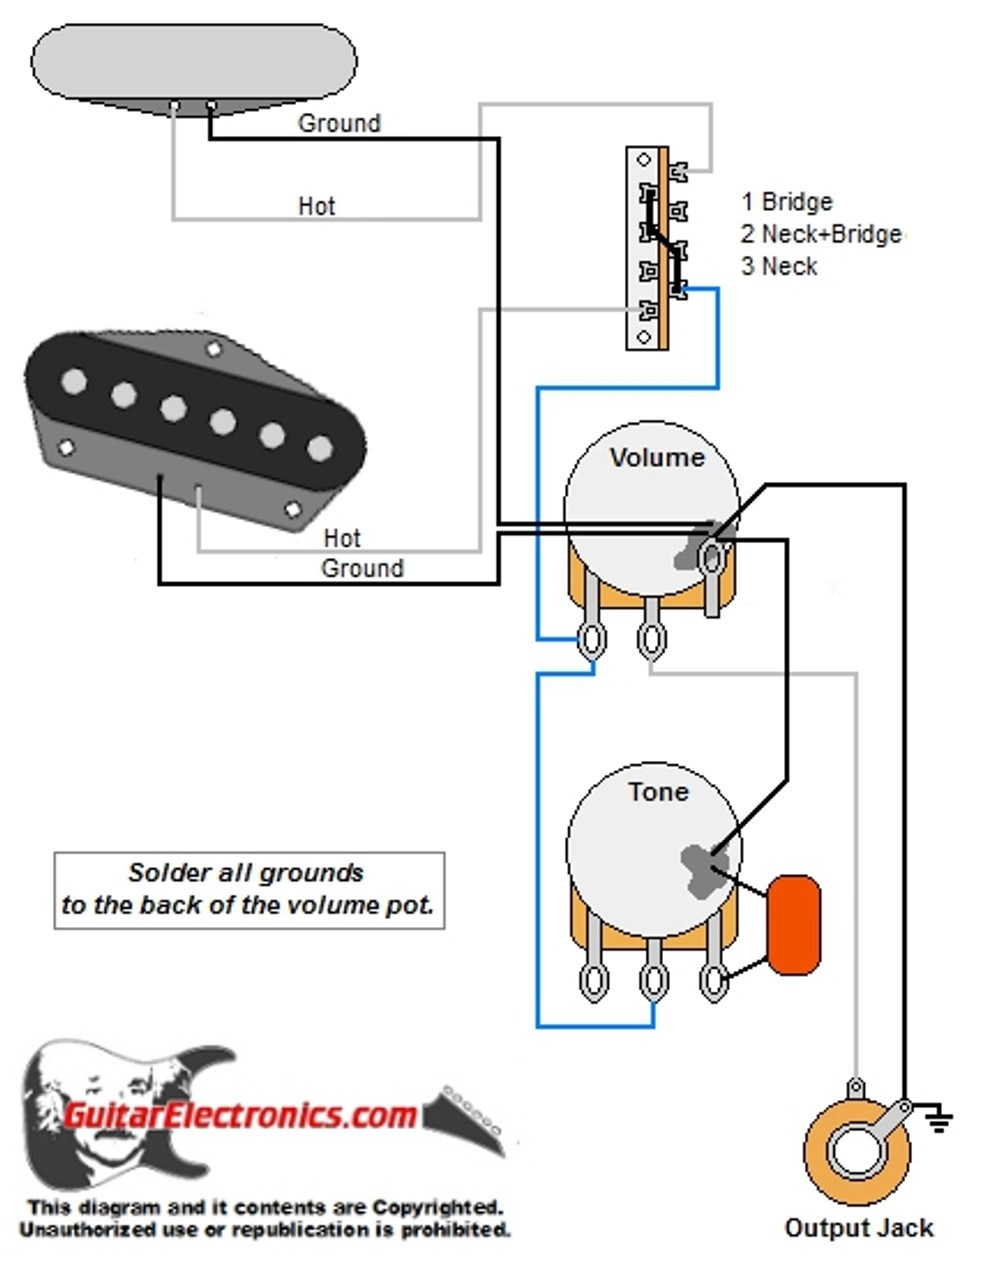 small resolution of telecaster wiring diagram wiring diagrams mytele style guitar wiring diagram telecaster wiring diagram seymour duncan telecaster